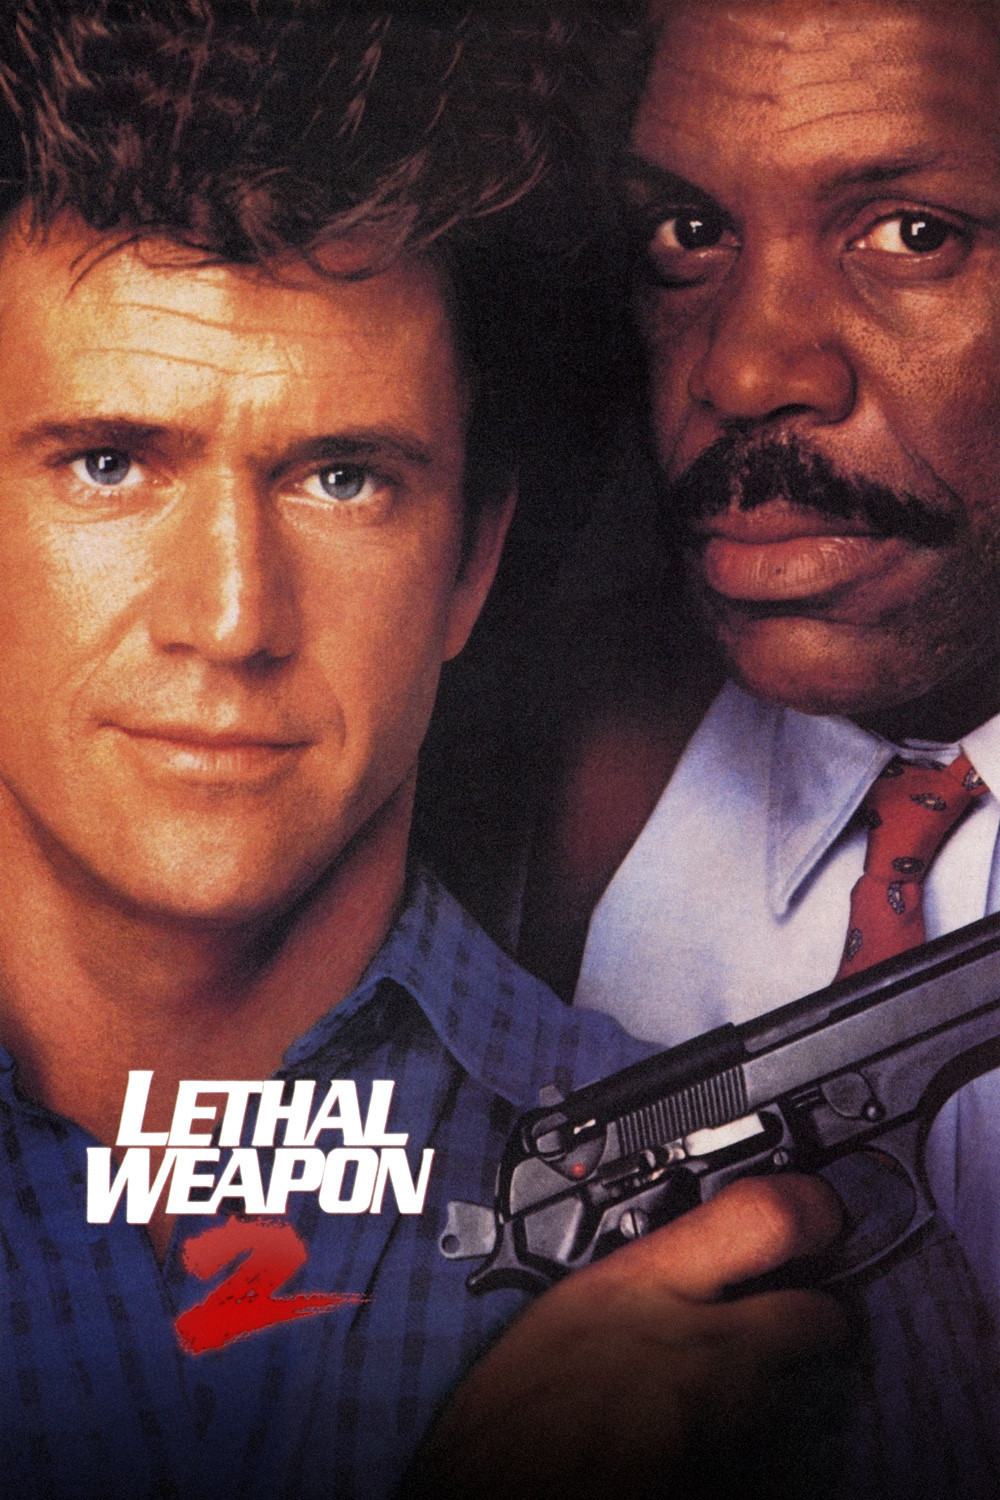 lethal weapon 2.jpg